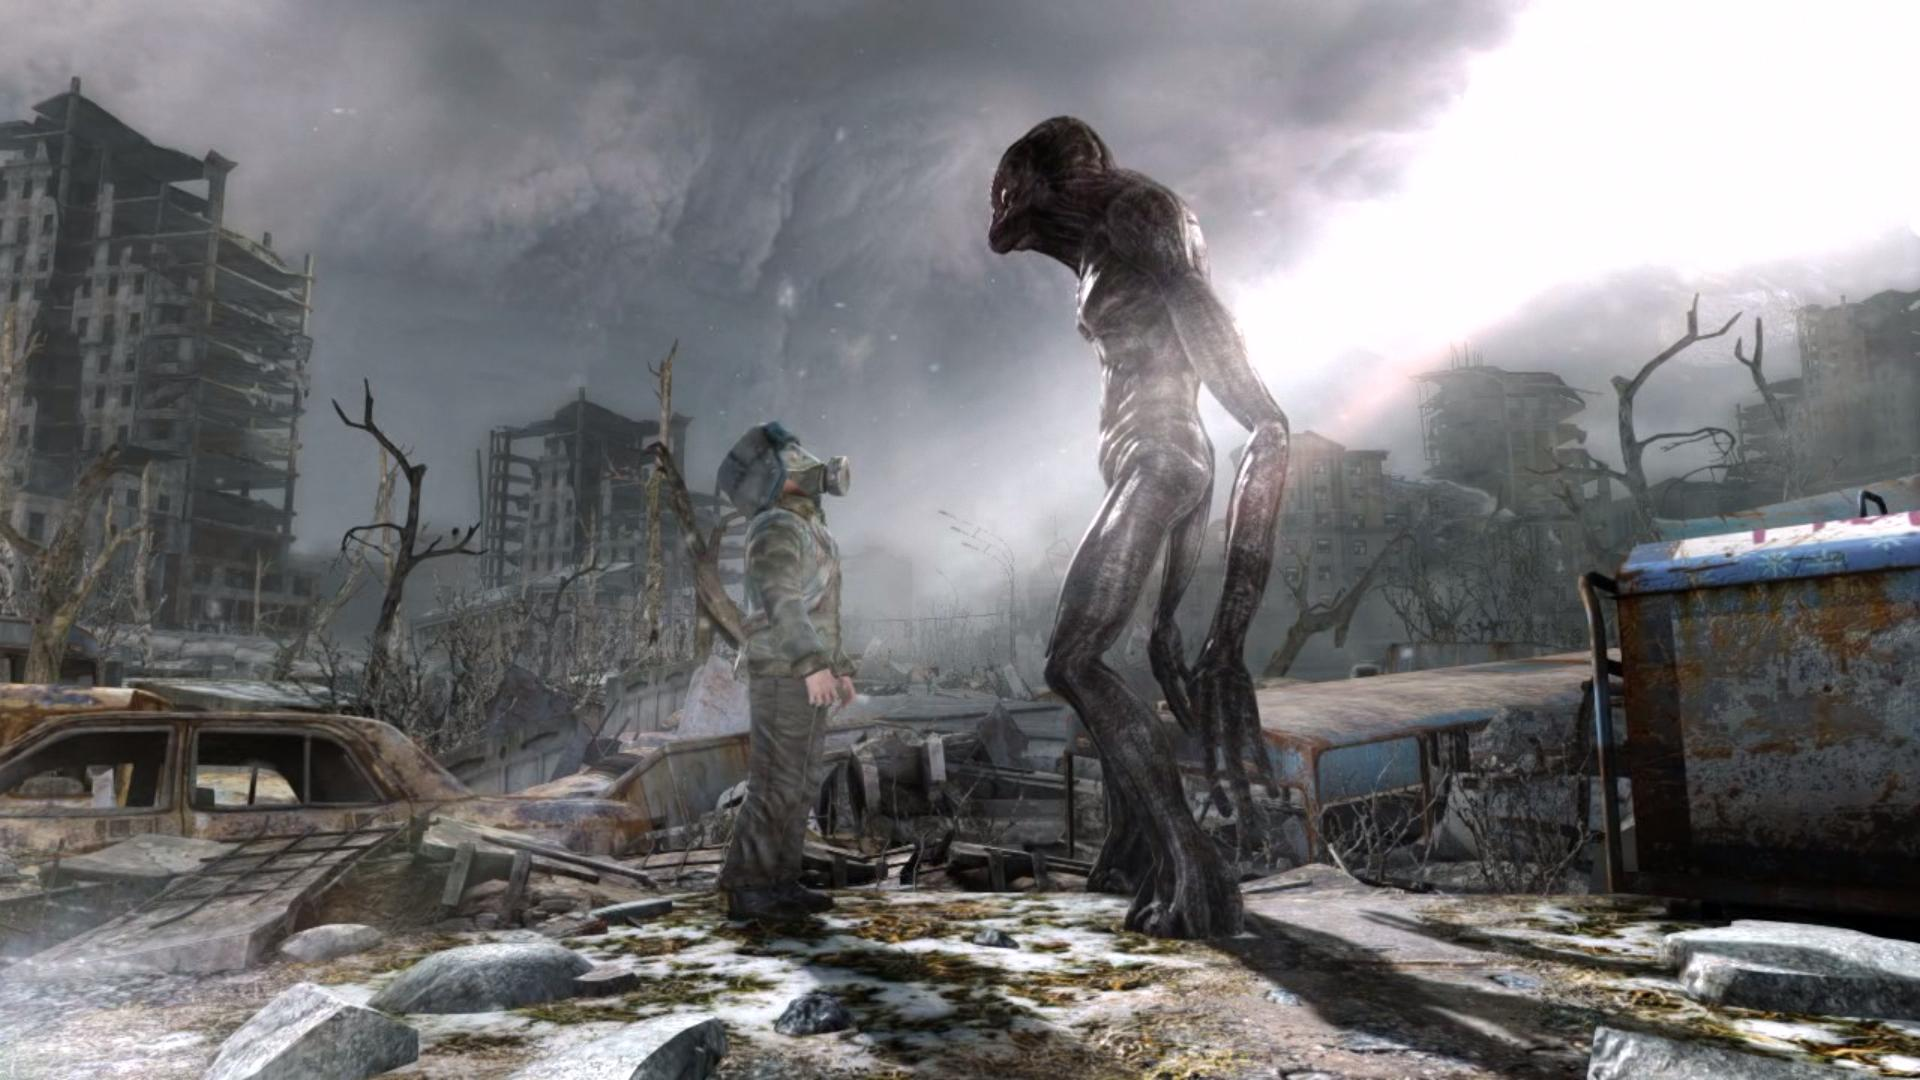 Android Wallpaper Hd 1080p Wallpapers Fond D Ecran Pour Metro Last Light Pc Ps3